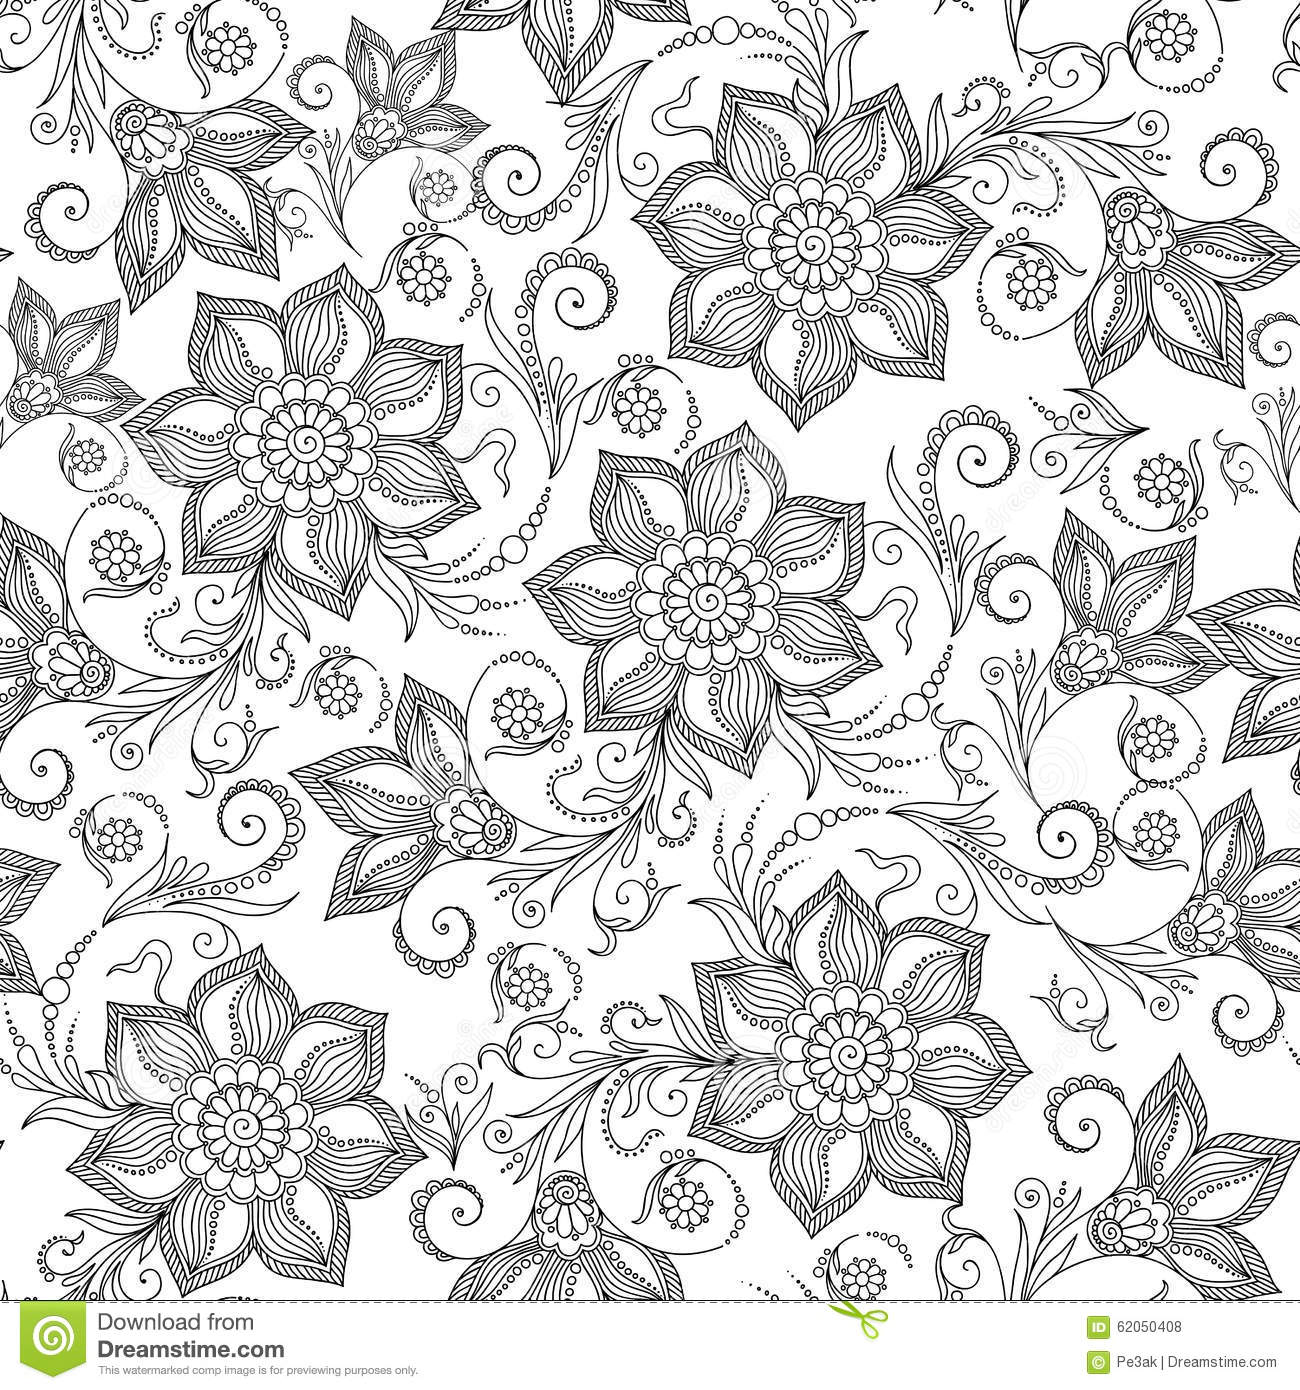 pattern for coloring book henna mehendy tattoo doodles seamless